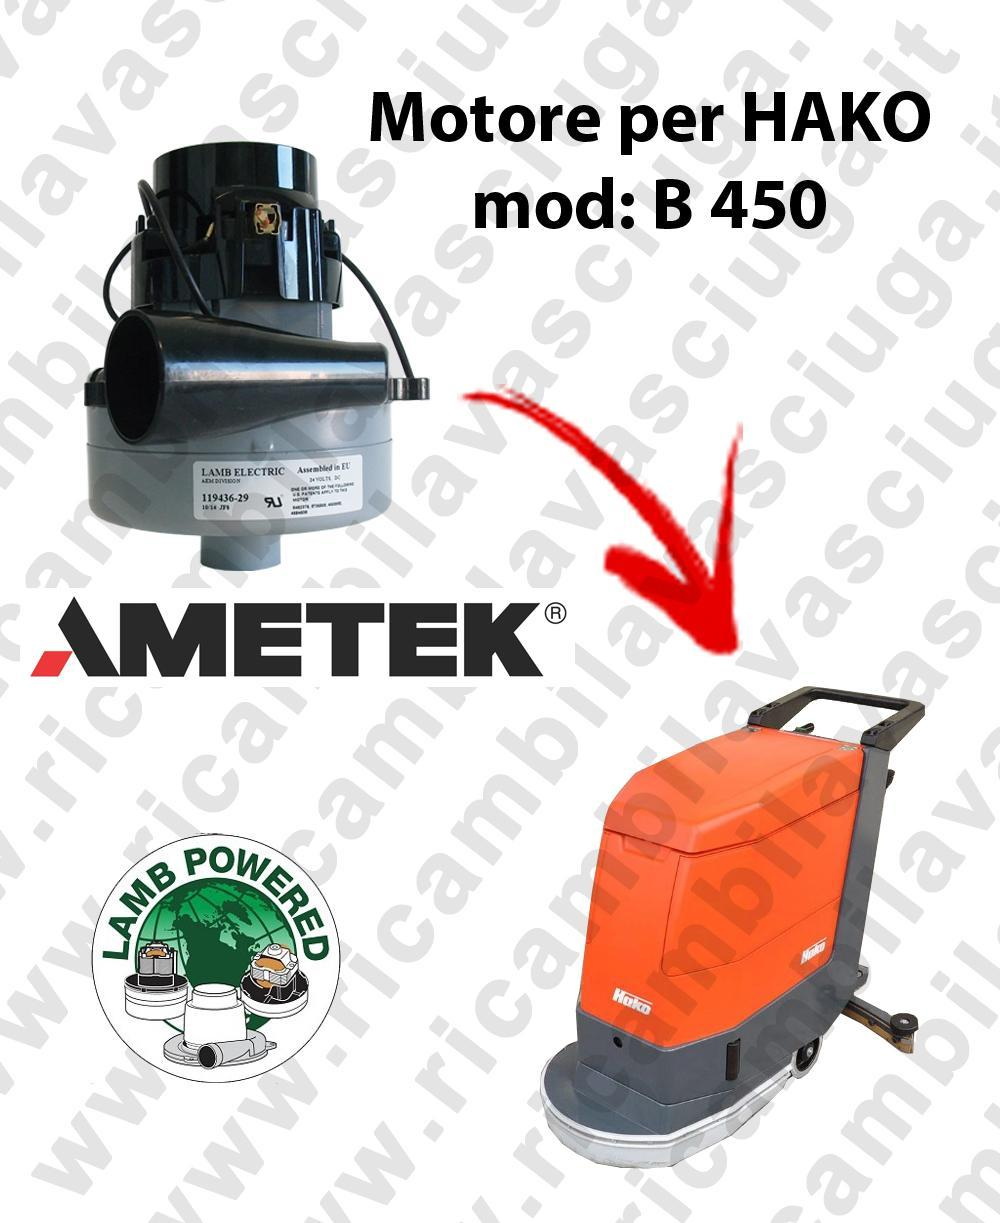 B 450 LAMB AMETEK vacuum motor for scrubber dryer HAKO